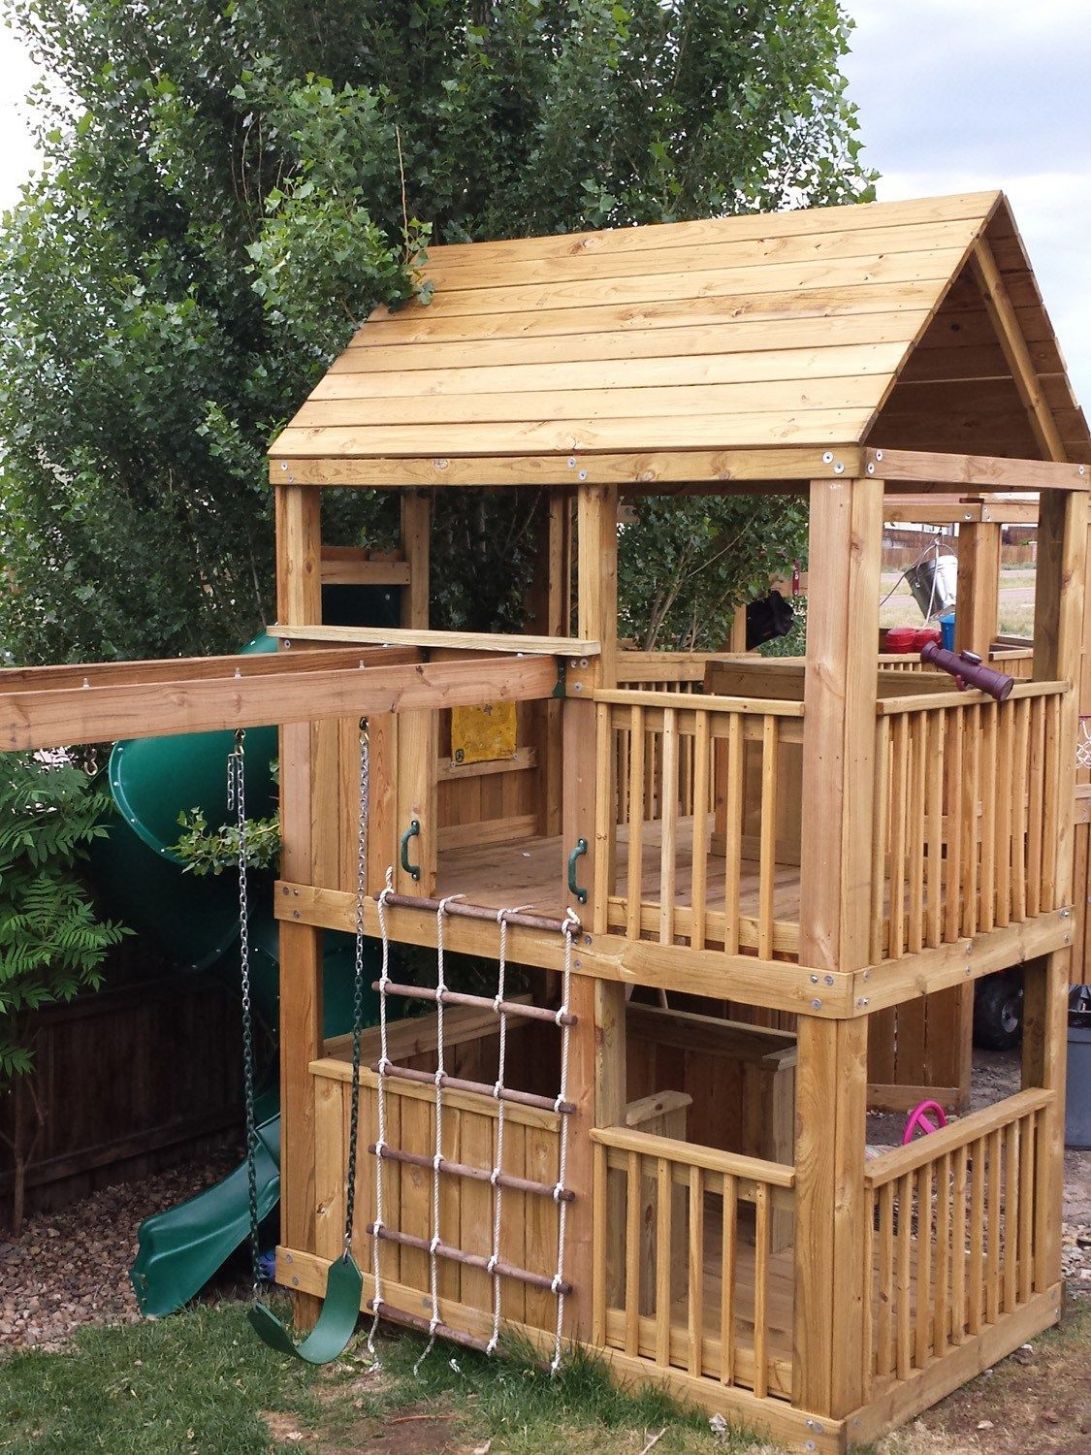 Under $11,11 (With images) | Backyard spaces, Play houses, Diy ..